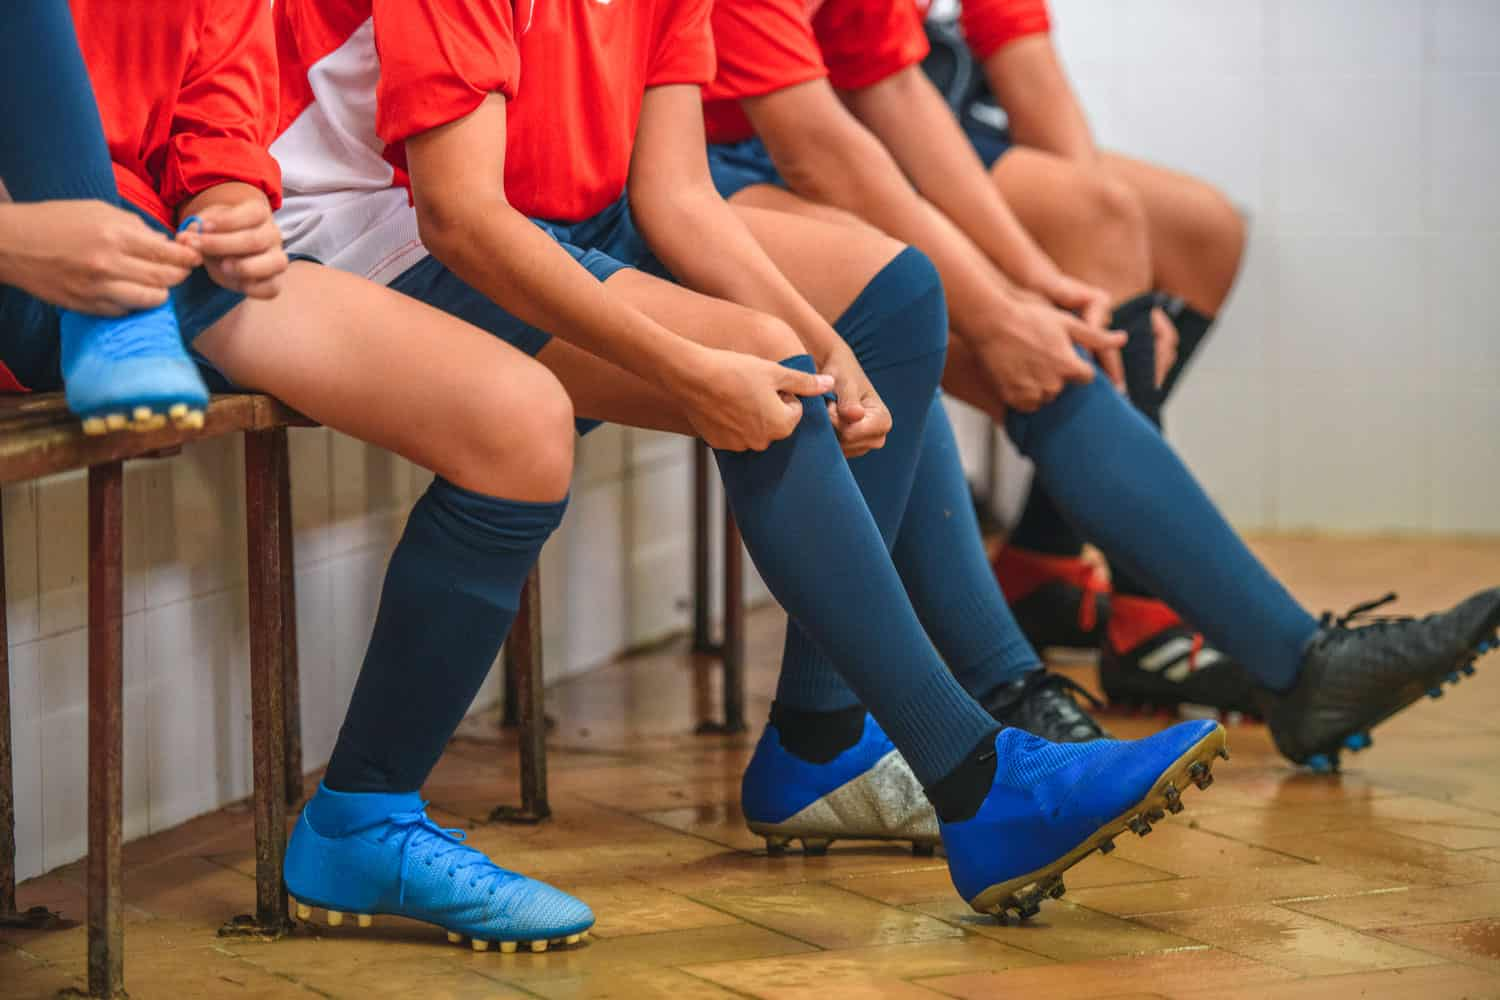 Partial view of boy footballers wearing red jerseys and putting on socks and shoes in locker room before practice, Should Football Cleats Be Tight Or Loose?